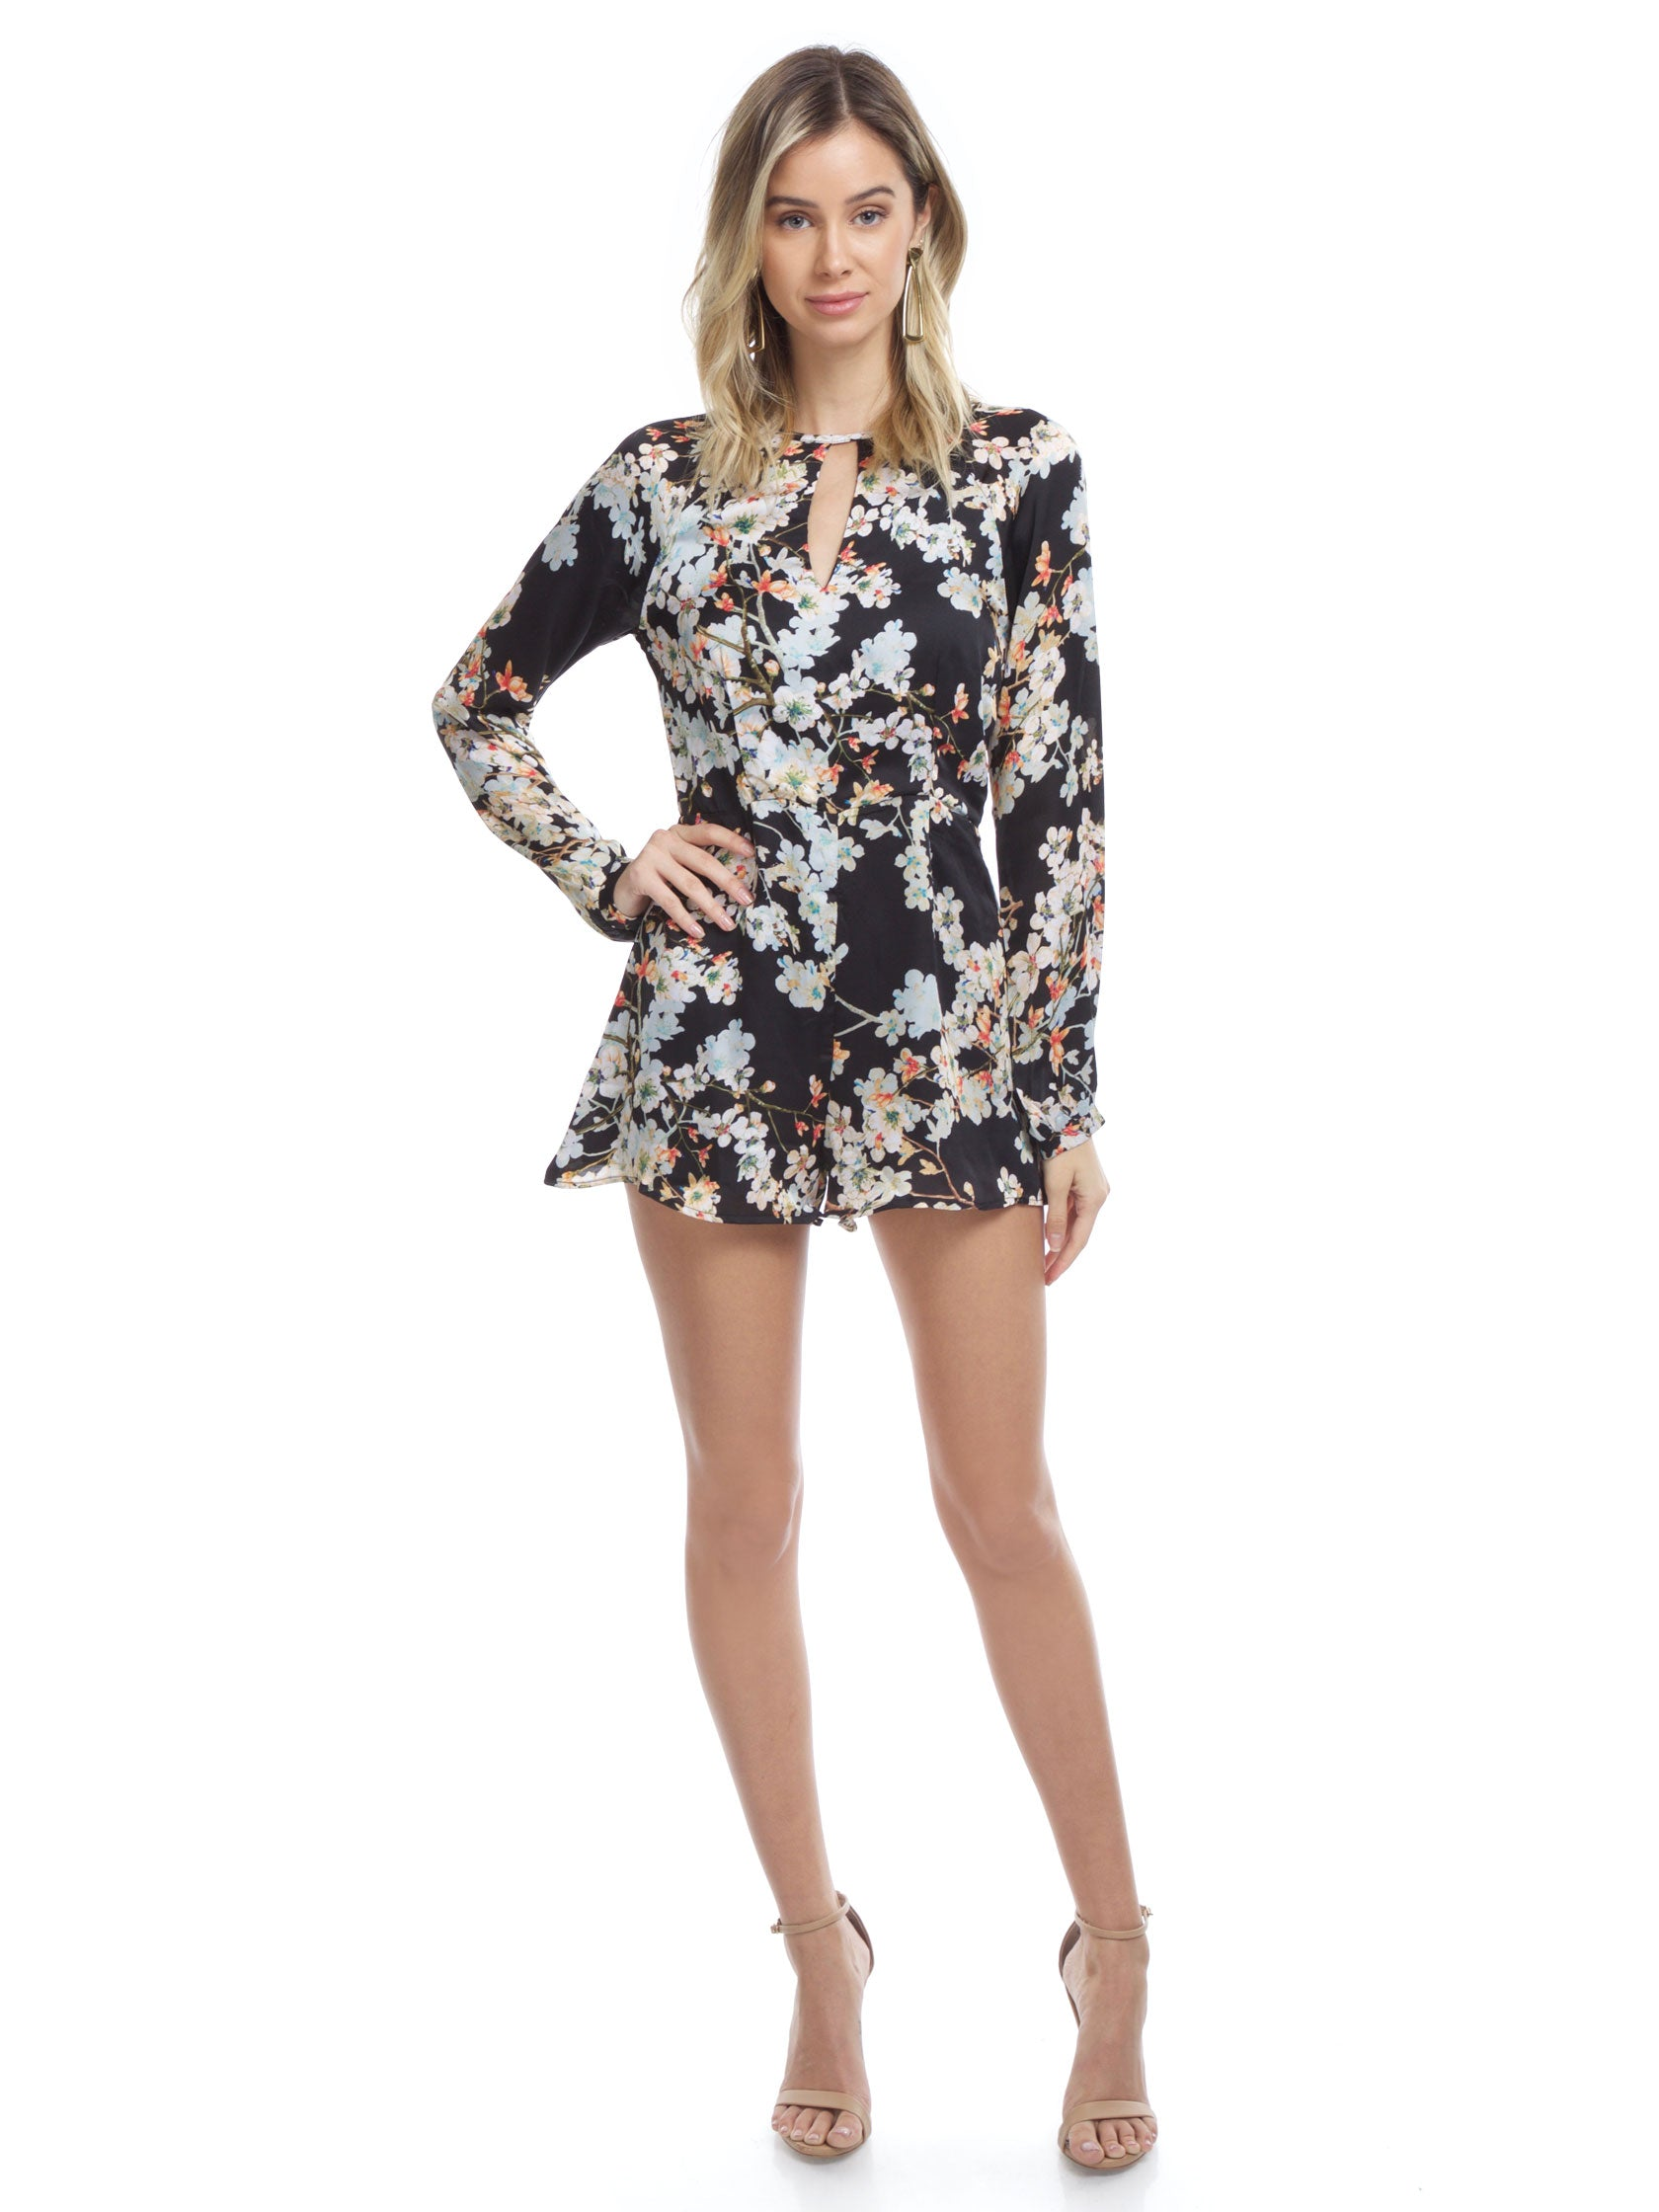 Girl outfit in a romper rental from WYLDR called Double Trouble Playsuit